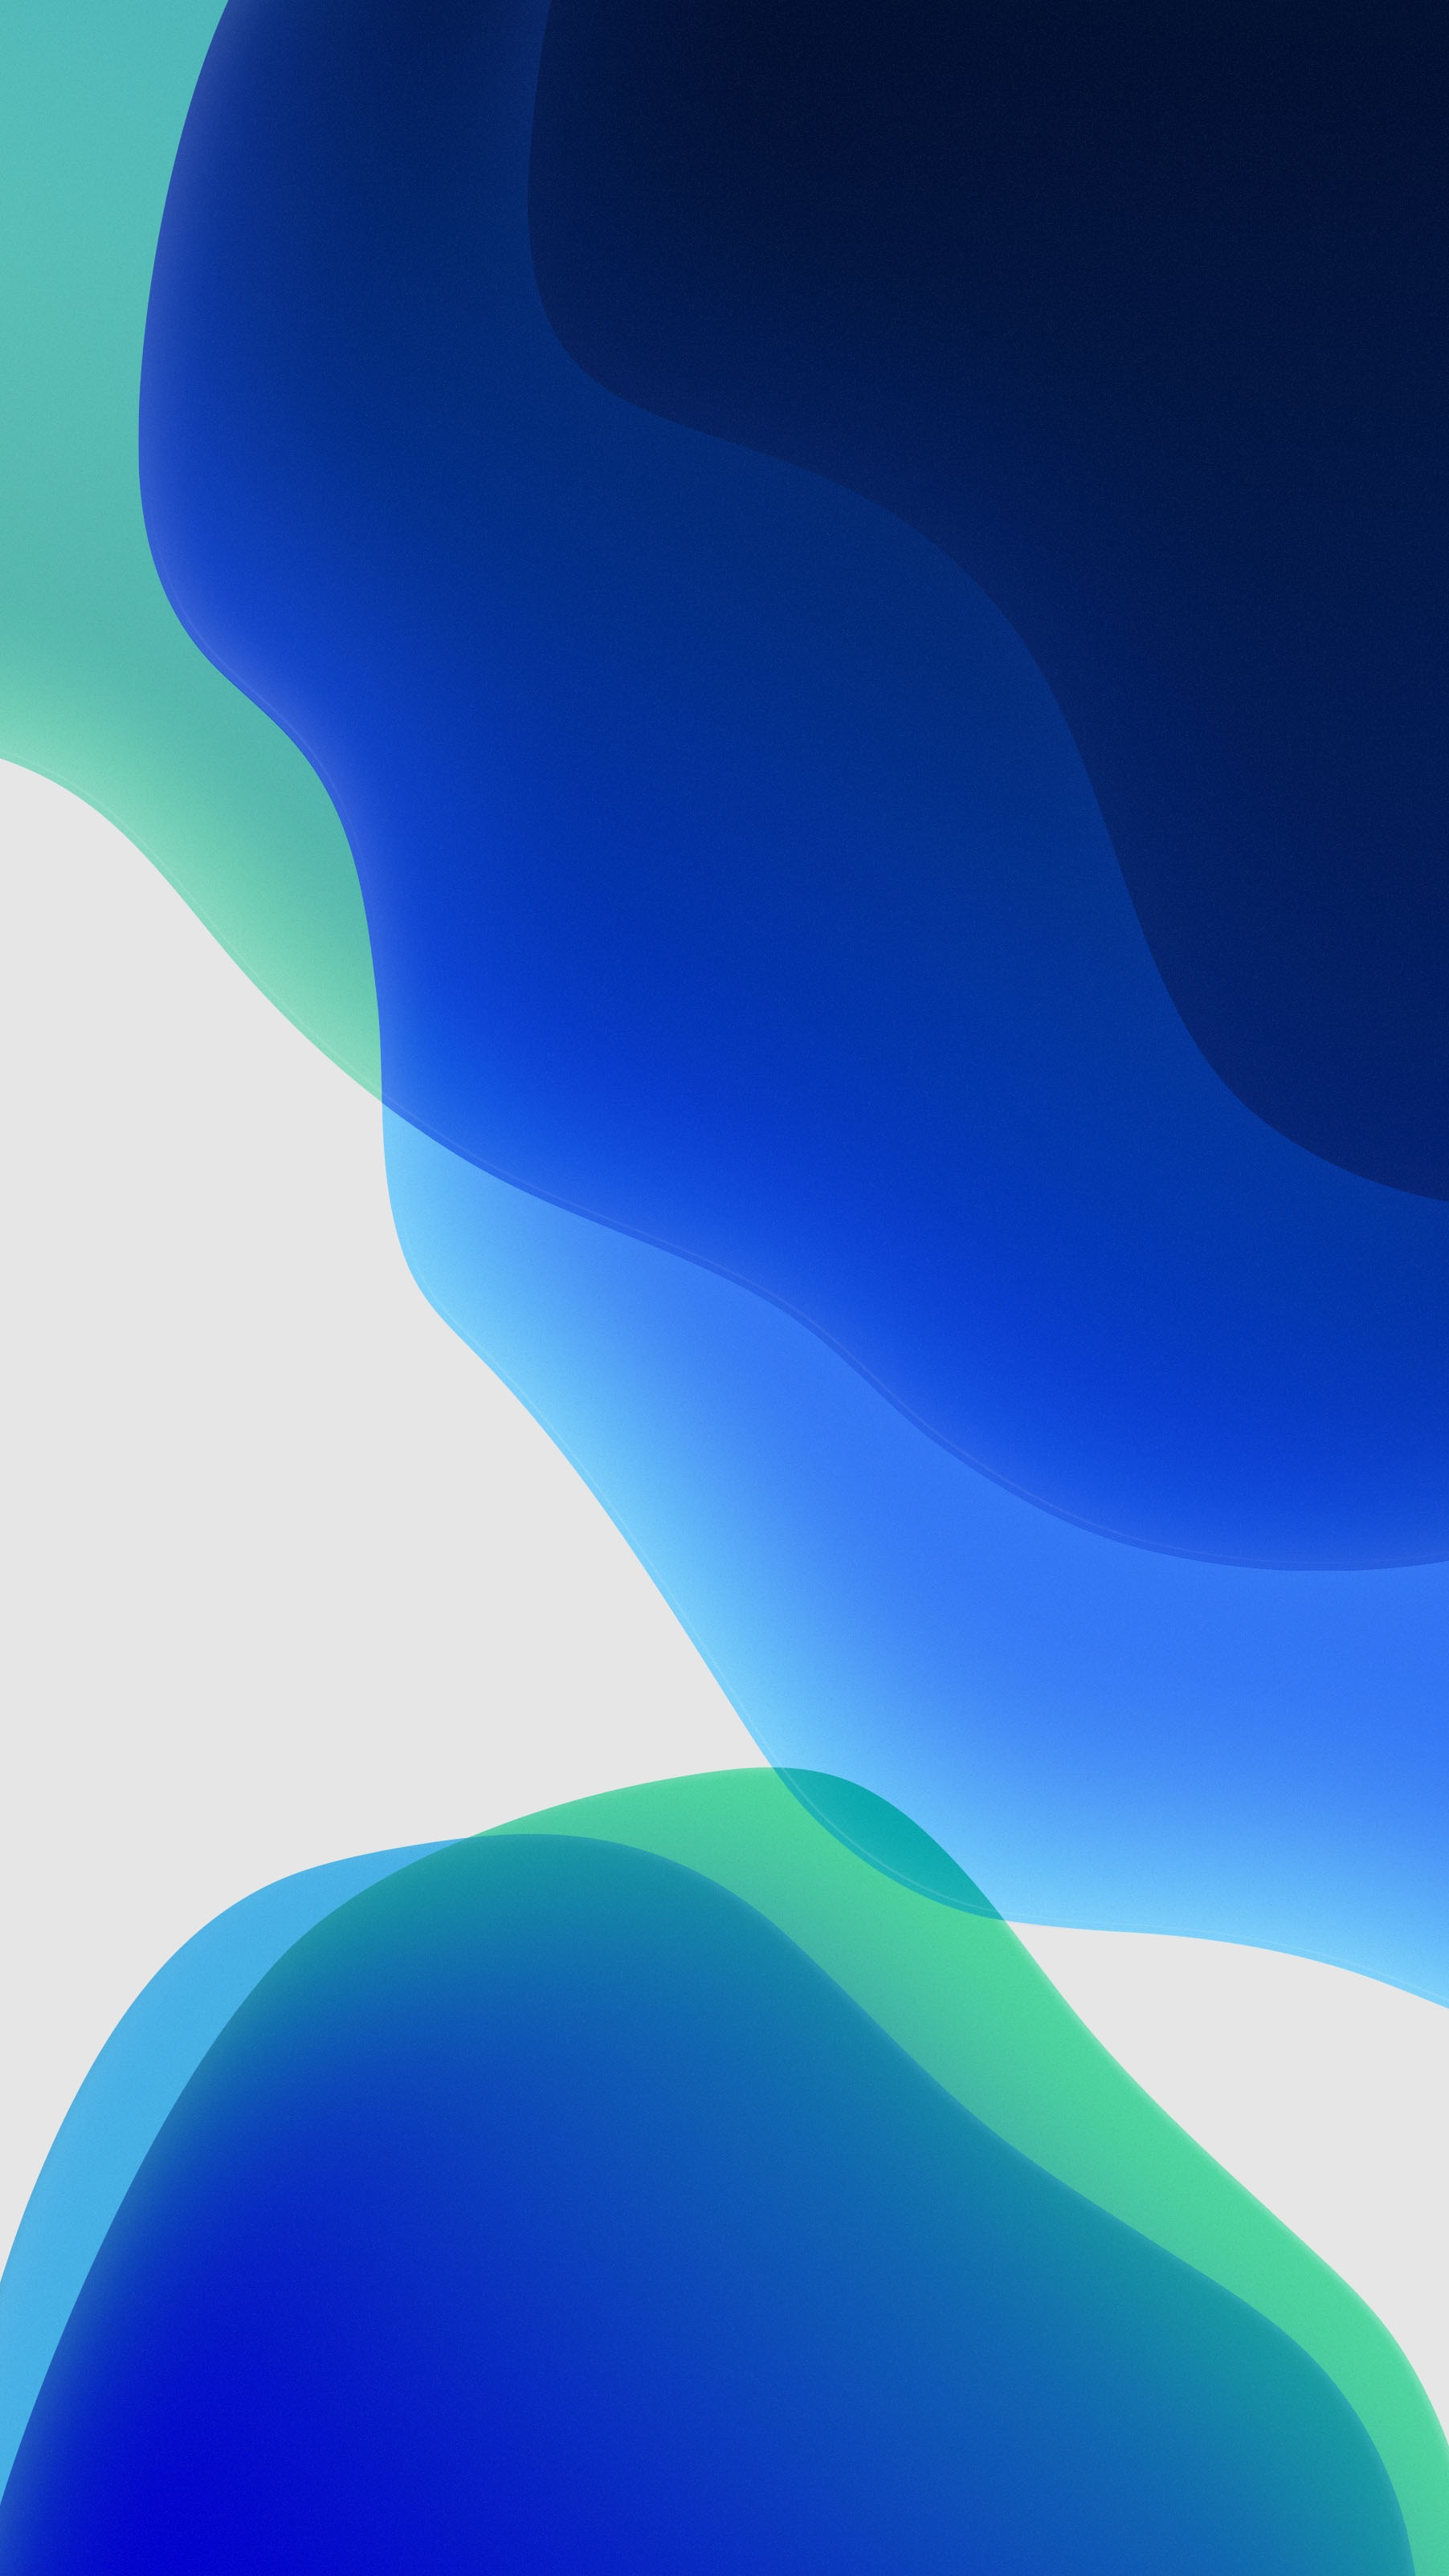 iOS 13 Blue White iPhone Wallpaper